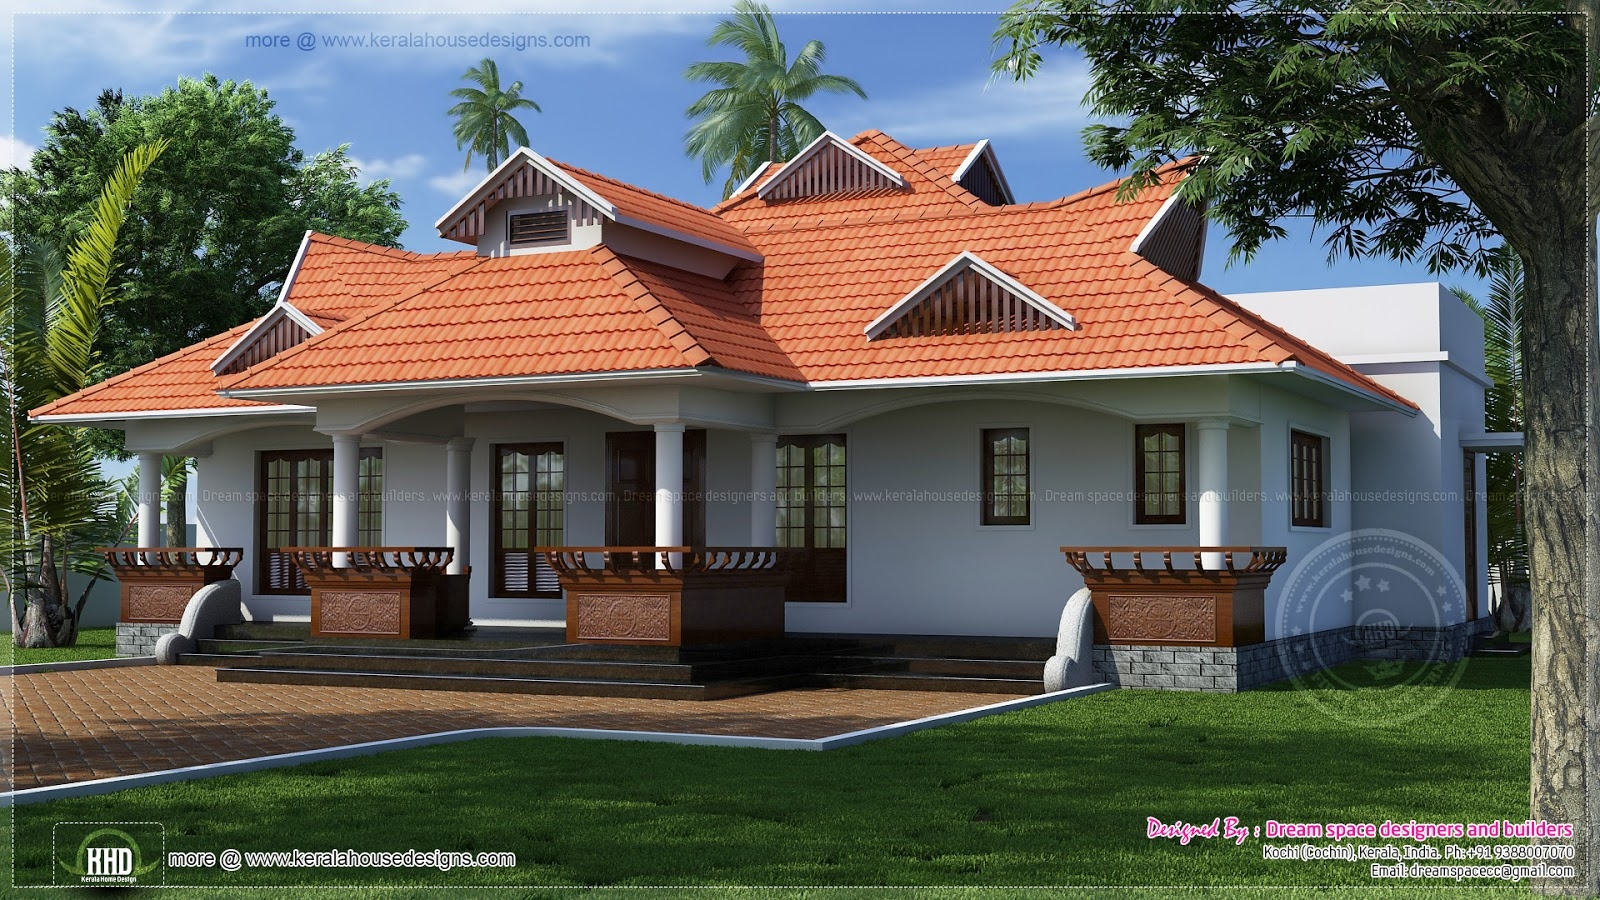 Fancy Fresh Kerala Traditional House Plans With Photos Ideas - Home Design inside Kerala Traditional House Plans With Photos